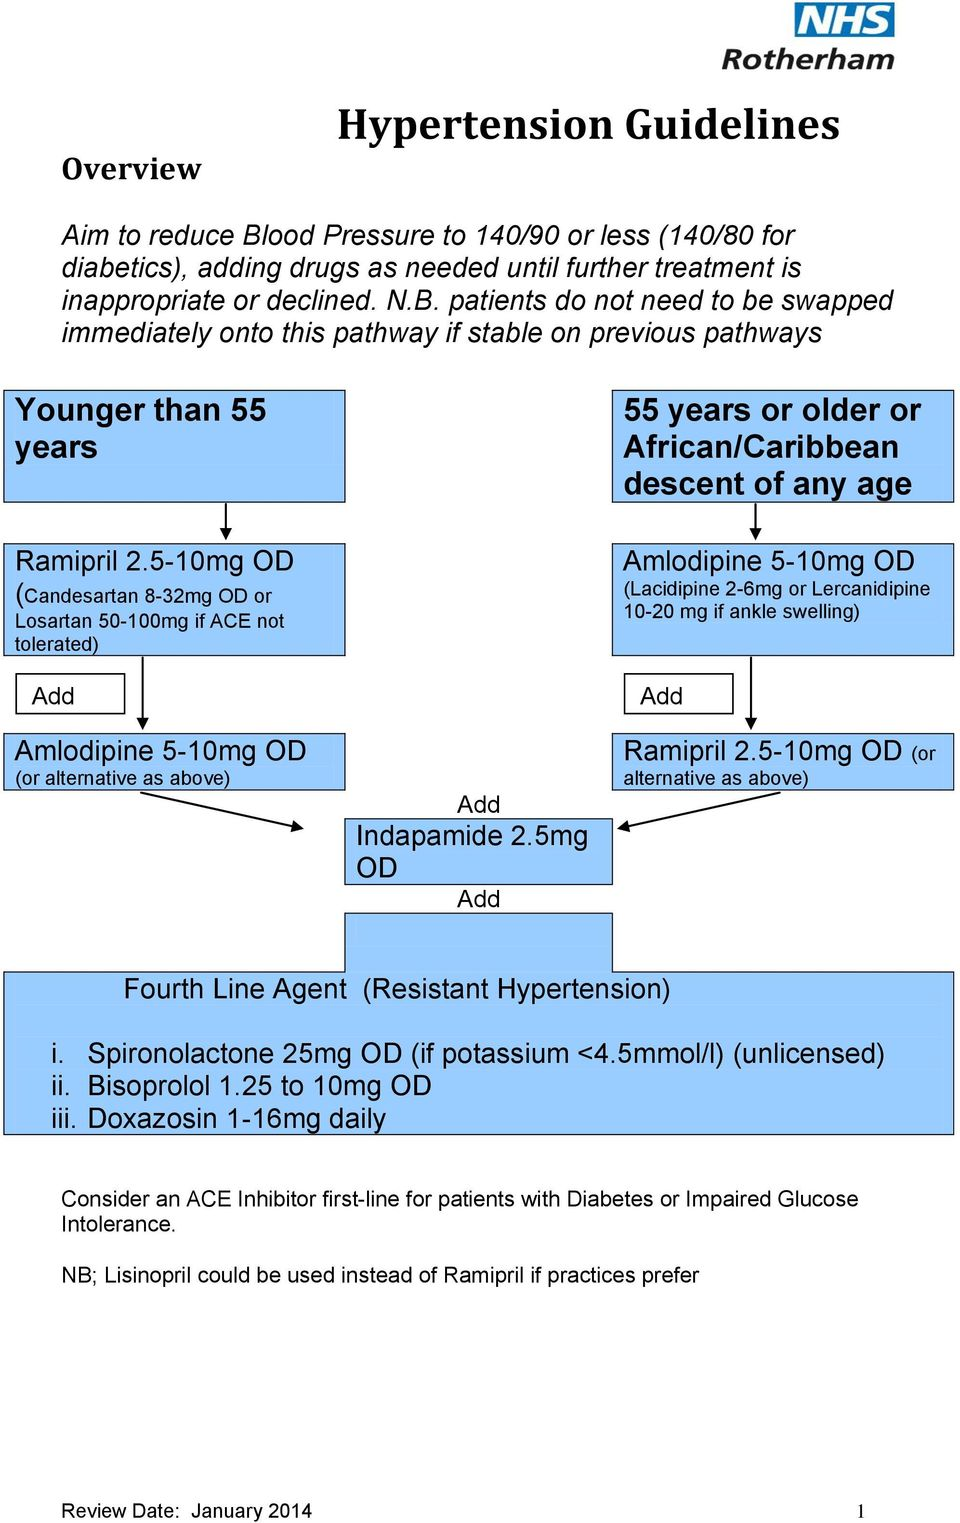 patients do not need to be swapped immediately onto this pathway if stable on previous pathways Younger than 55 years 55 years or older or African/Caribbean descent of any age Ramipril 2.